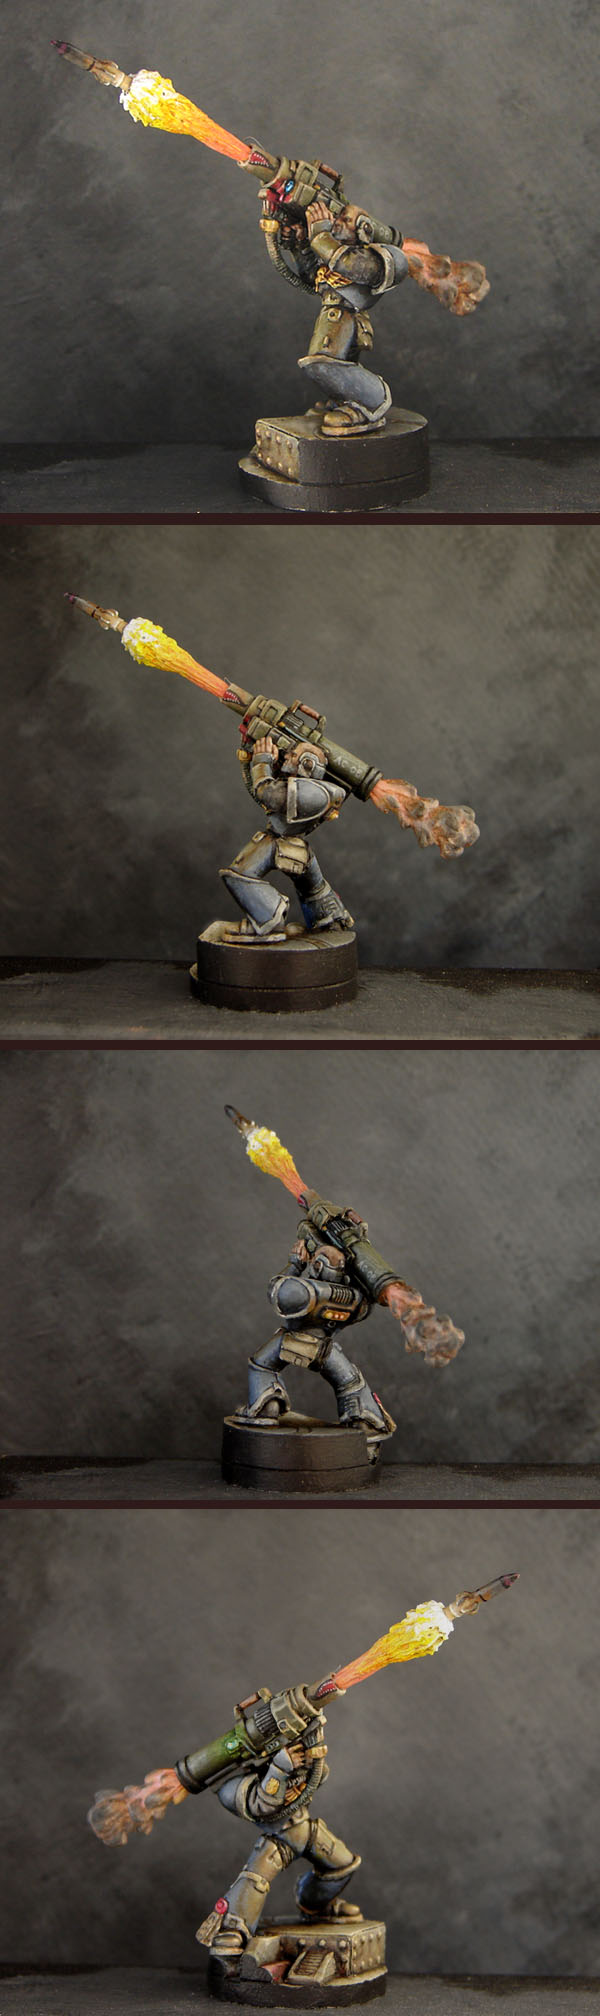 Space Marine with missle launcher